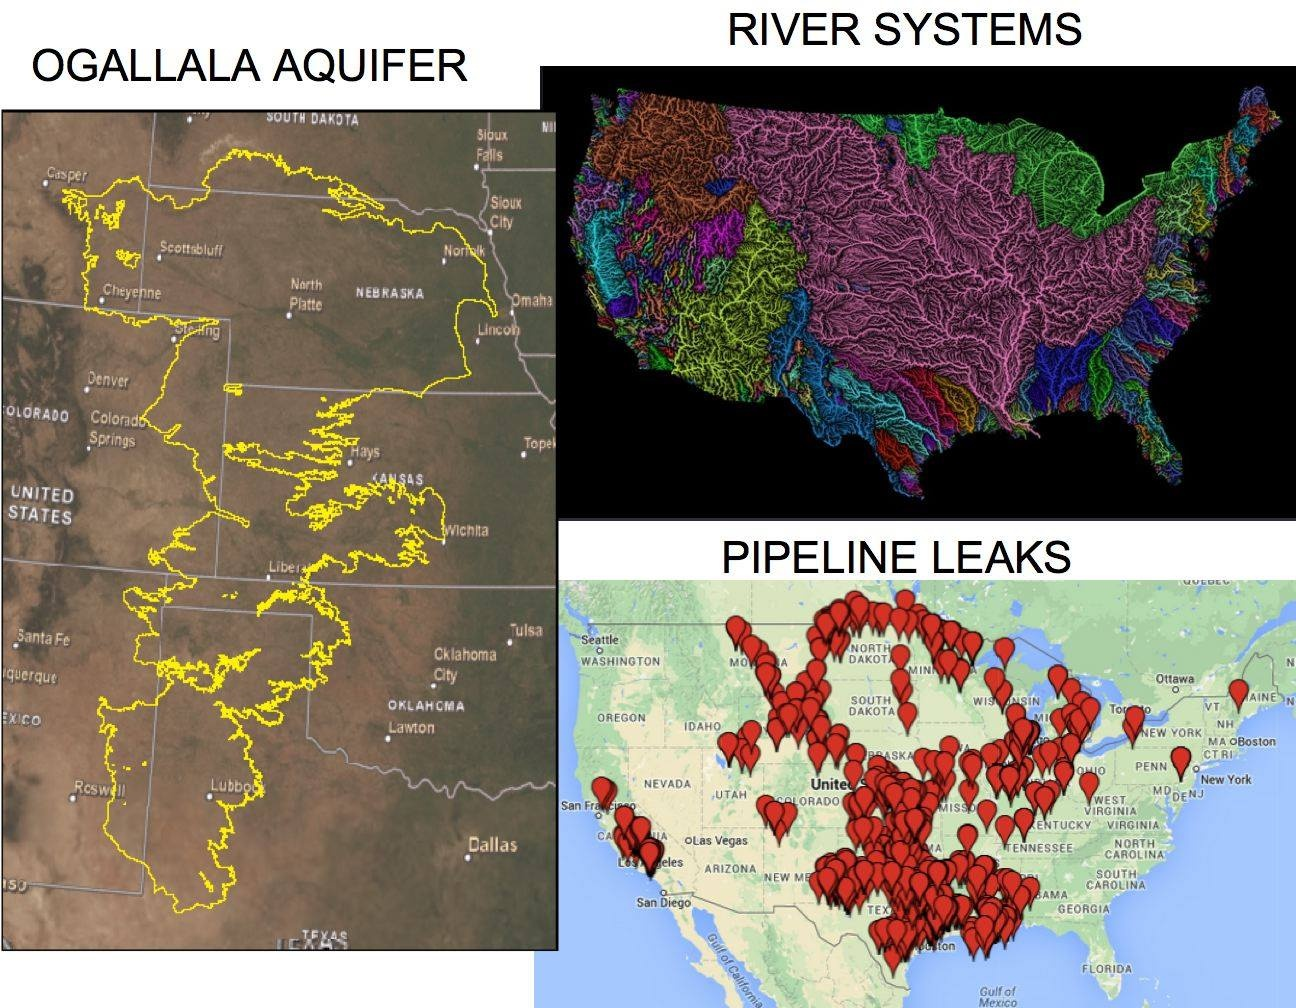 Treaty Cultural And Environmental Laws NoDAPL Archive - Us pipeline map meme